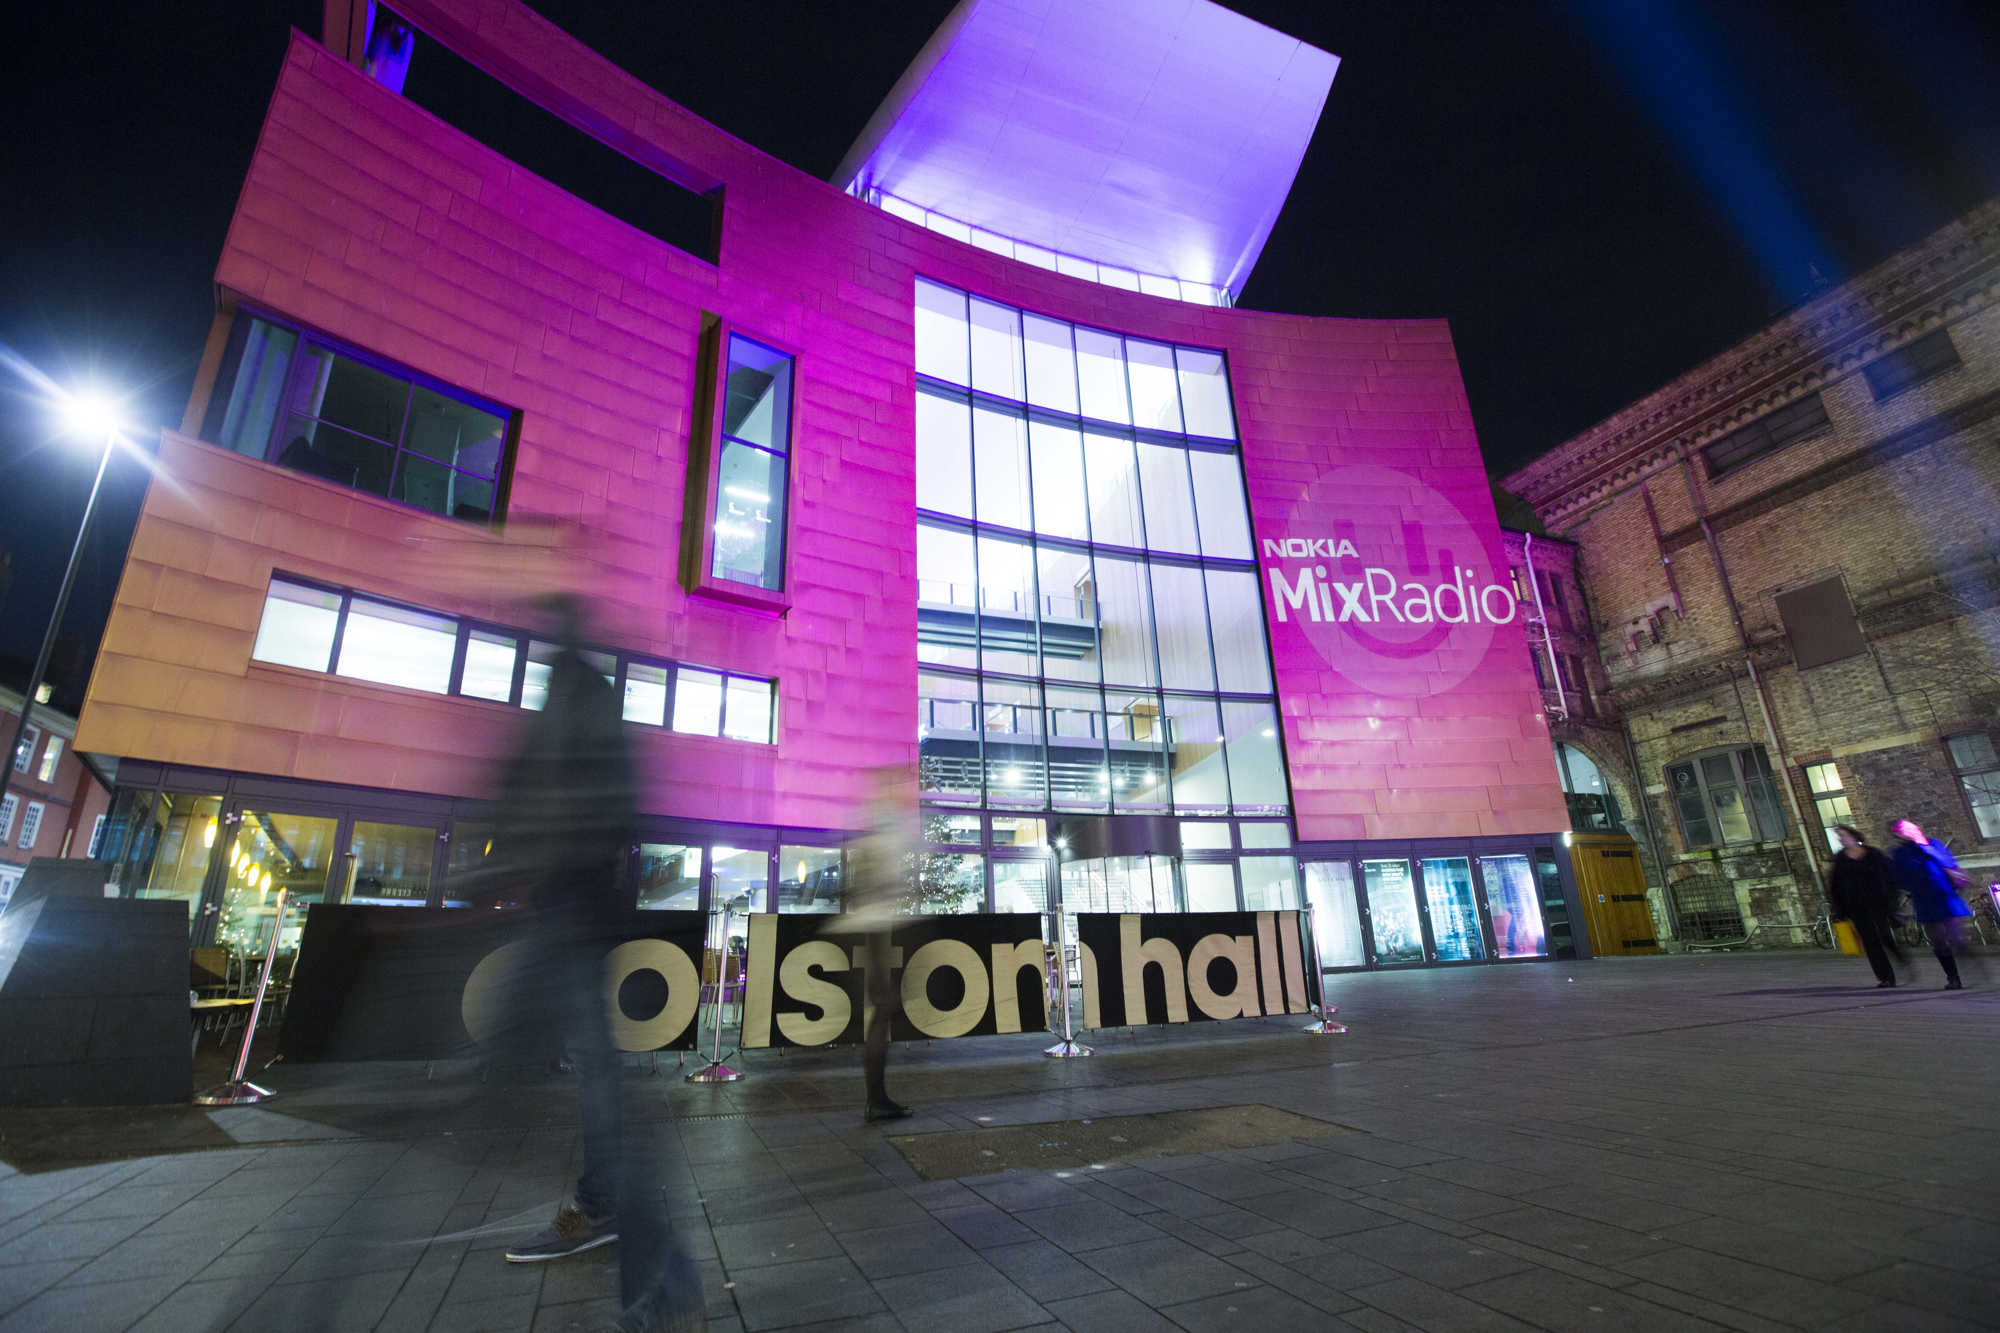 Colston Hall for hire